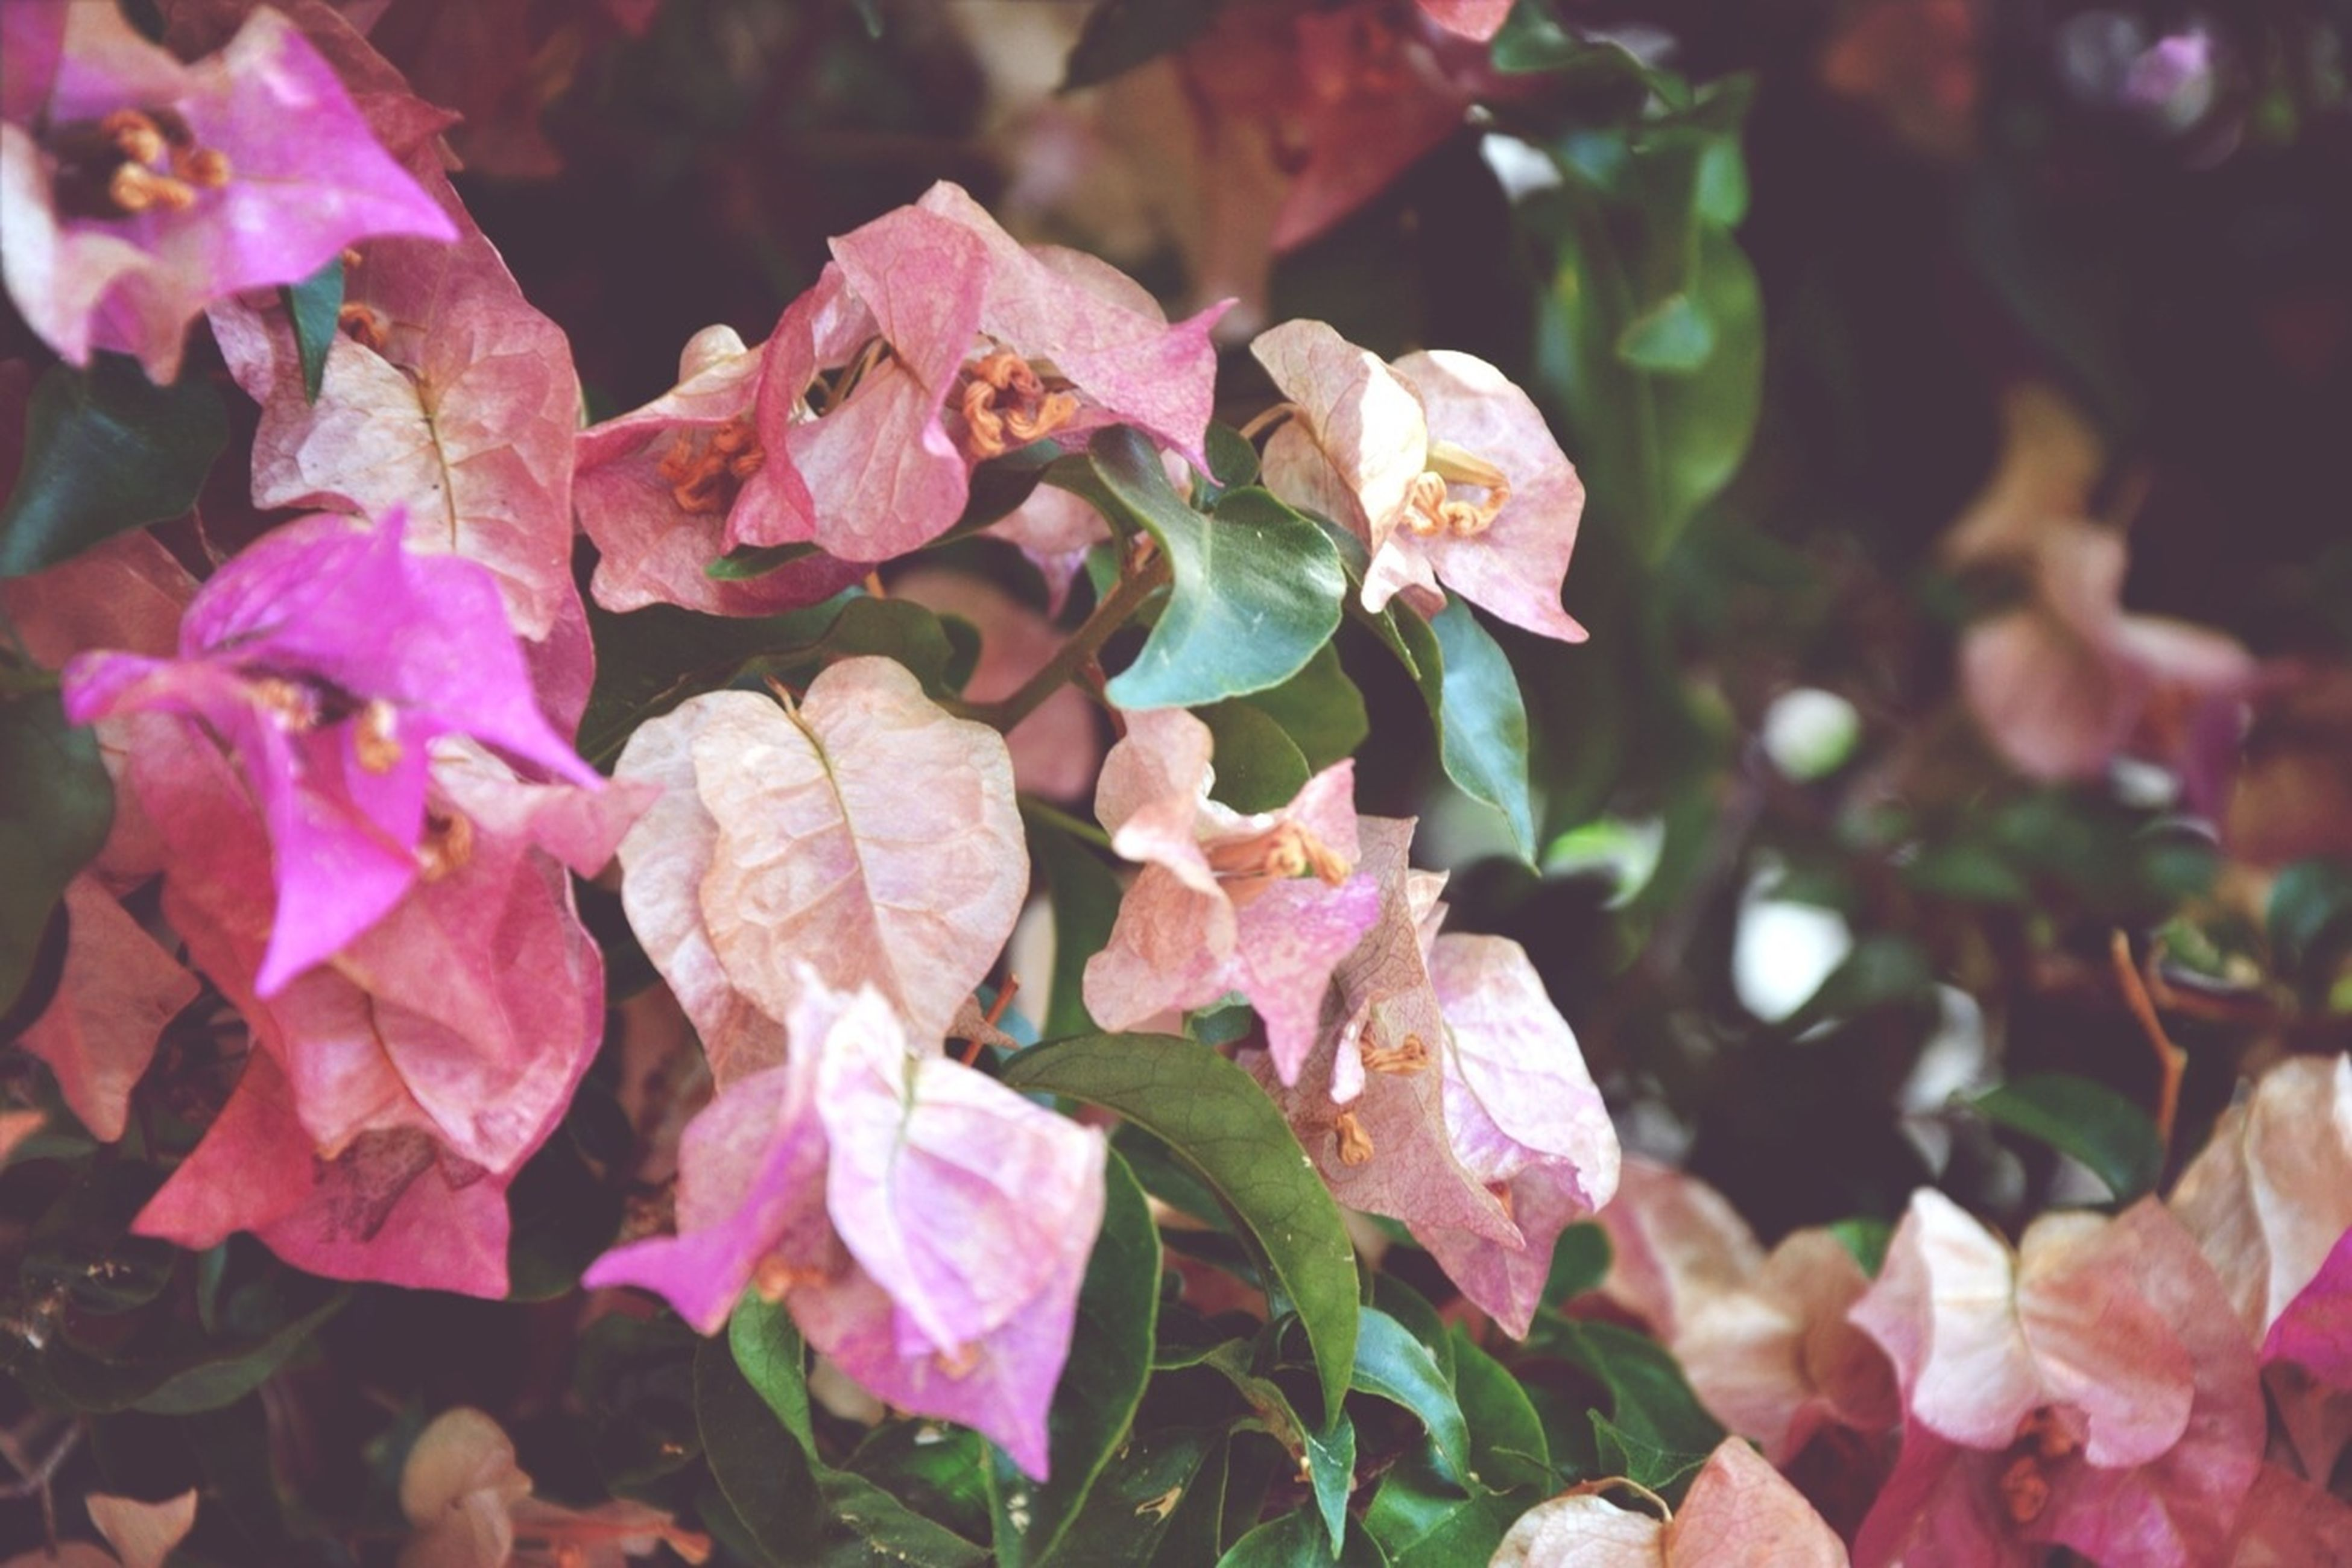 growth, leaf, fragility, flower, beauty in nature, freshness, nature, close-up, pink color, focus on foreground, season, petal, plant, autumn, day, outdoors, change, leaves, no people, selective focus